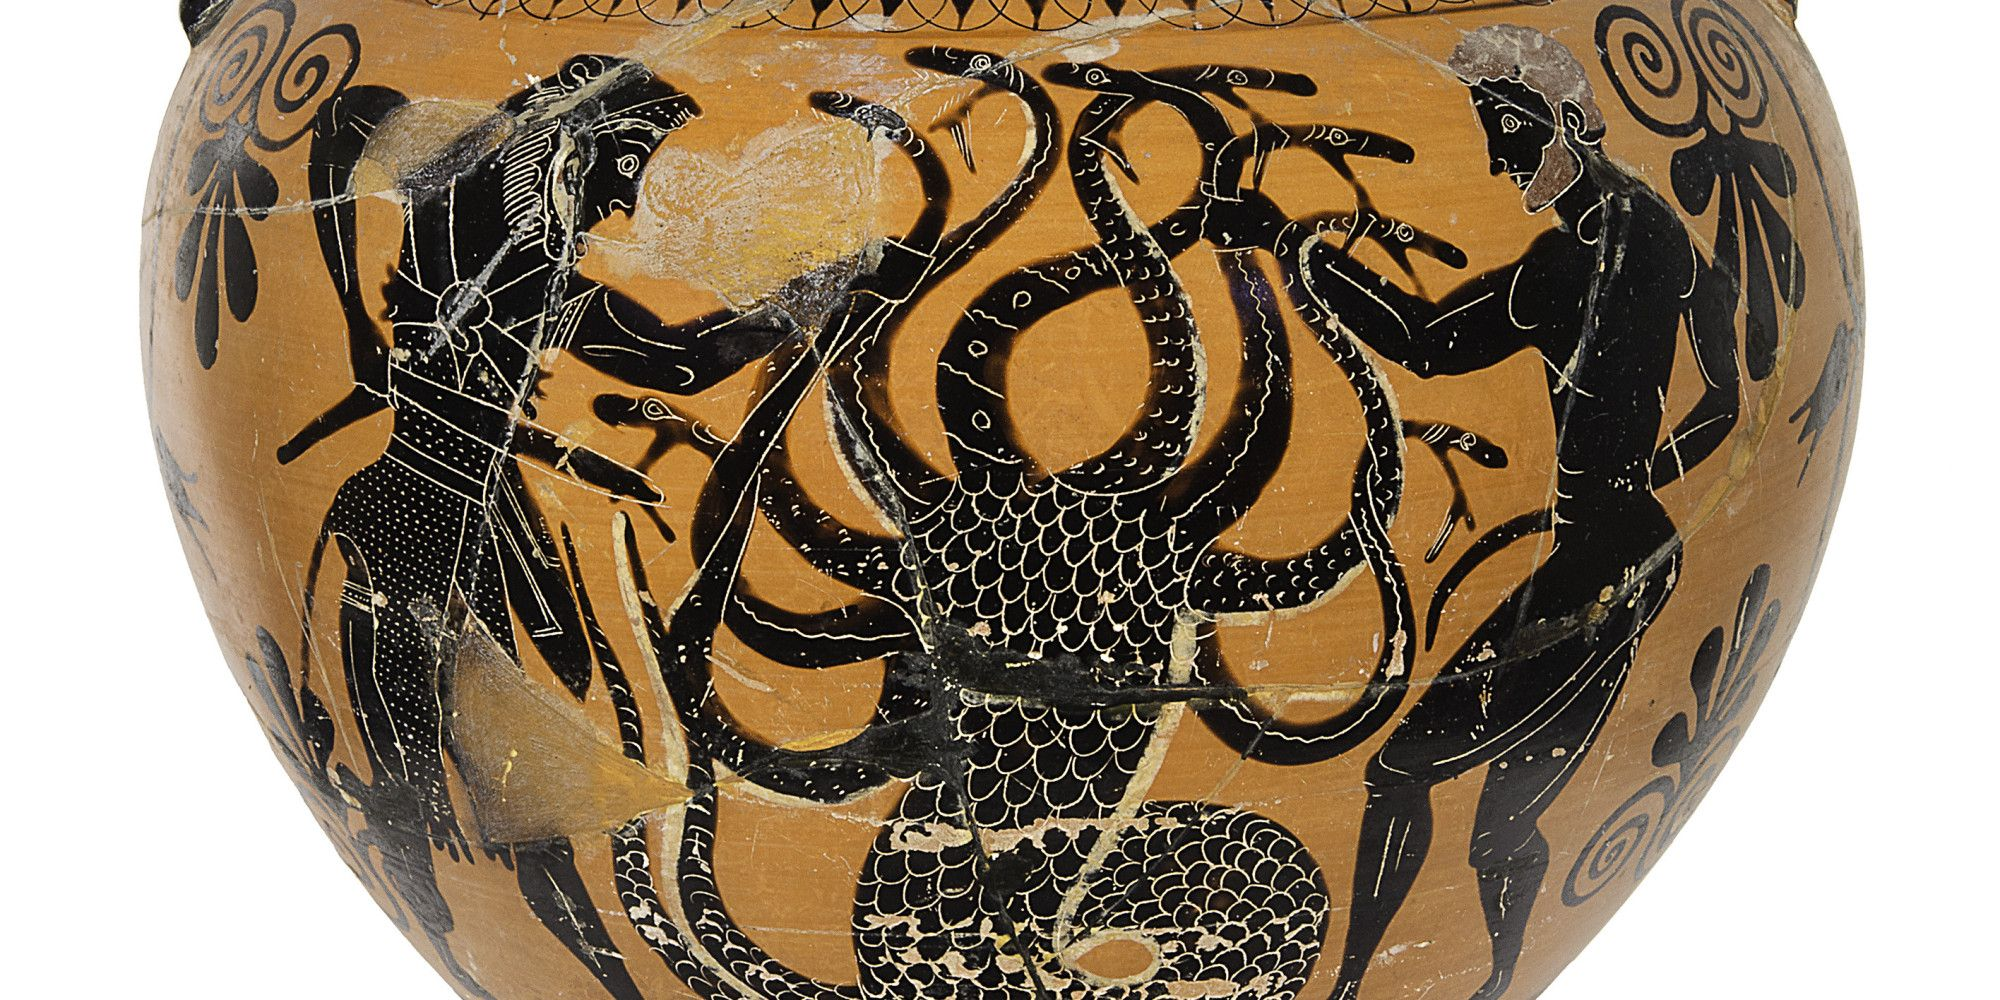 Minotaurs, chimeras, gorgons, the Sphinx, harpies, sirens, satyrs, centaurs, Pegasus, Scylla -- these are but a few of the monsters and creatures that populate your favorite myths. From the Bronze Age